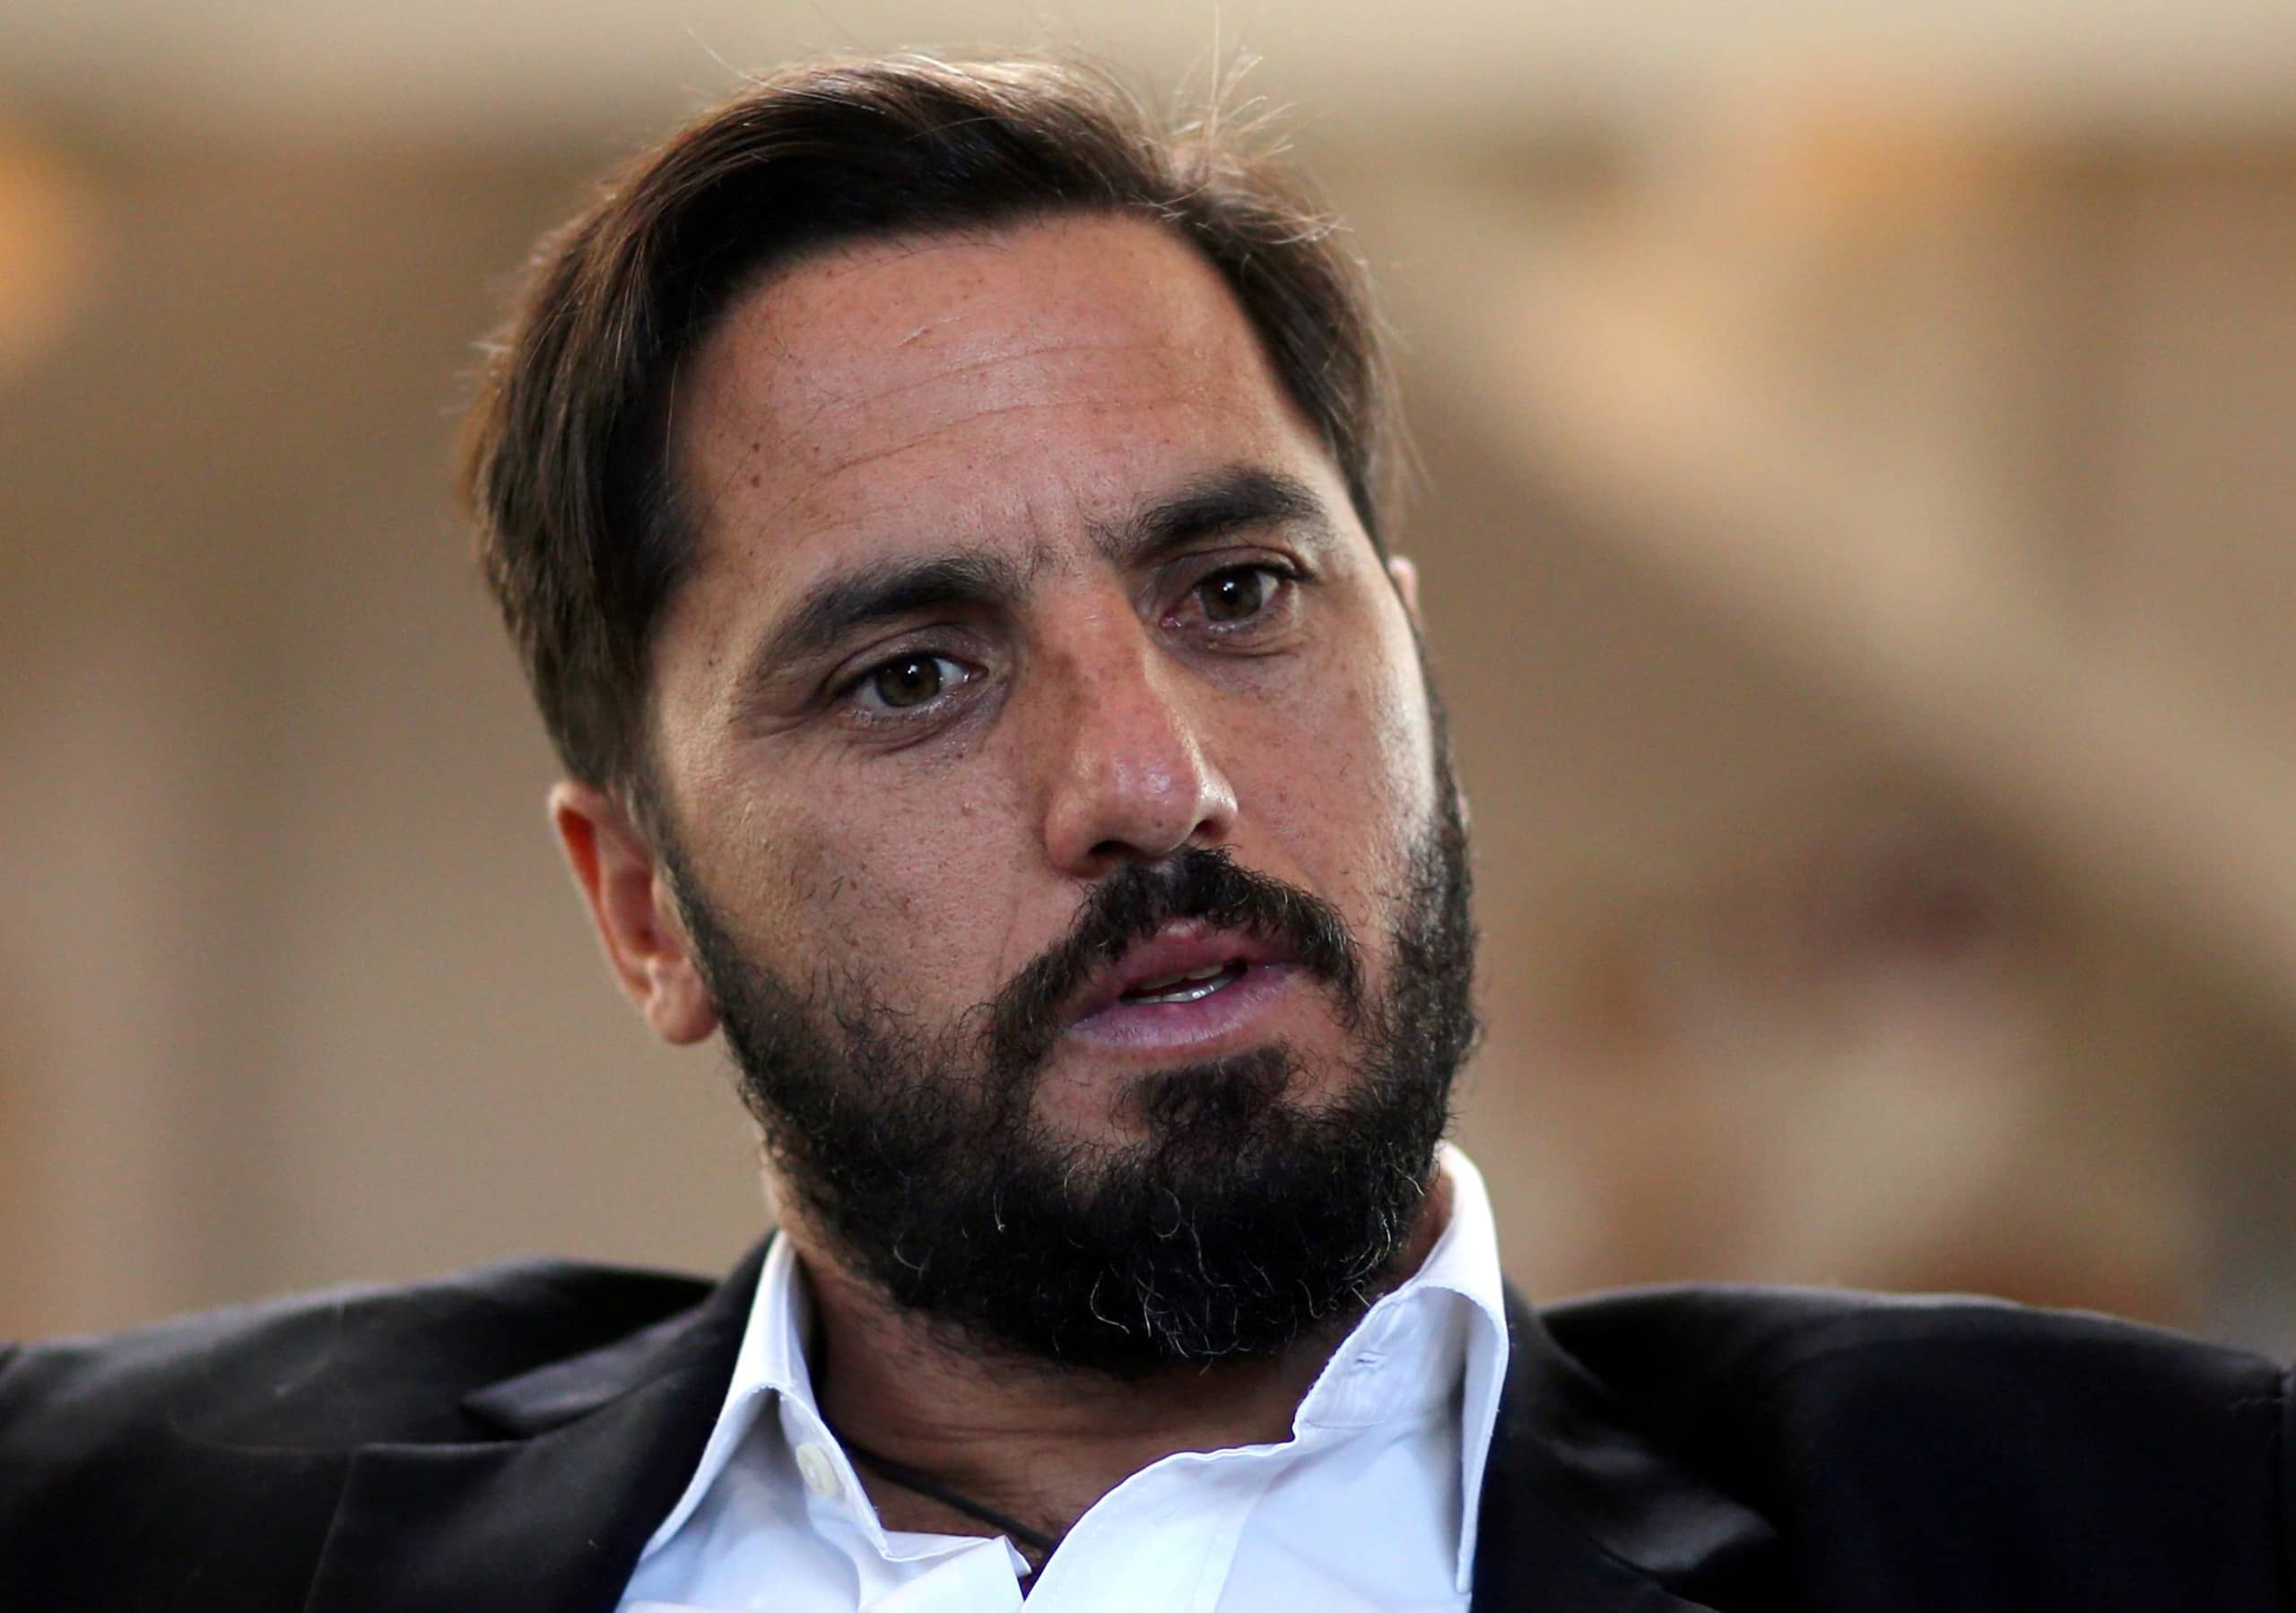 Agustin Pichot, the former Argentina captain now running to become chairman of World Rugby, says his experience at the 2019 Rugby World Cup in Japan is behind his push to reduce the sport's complexity for viewers. | REUTERS